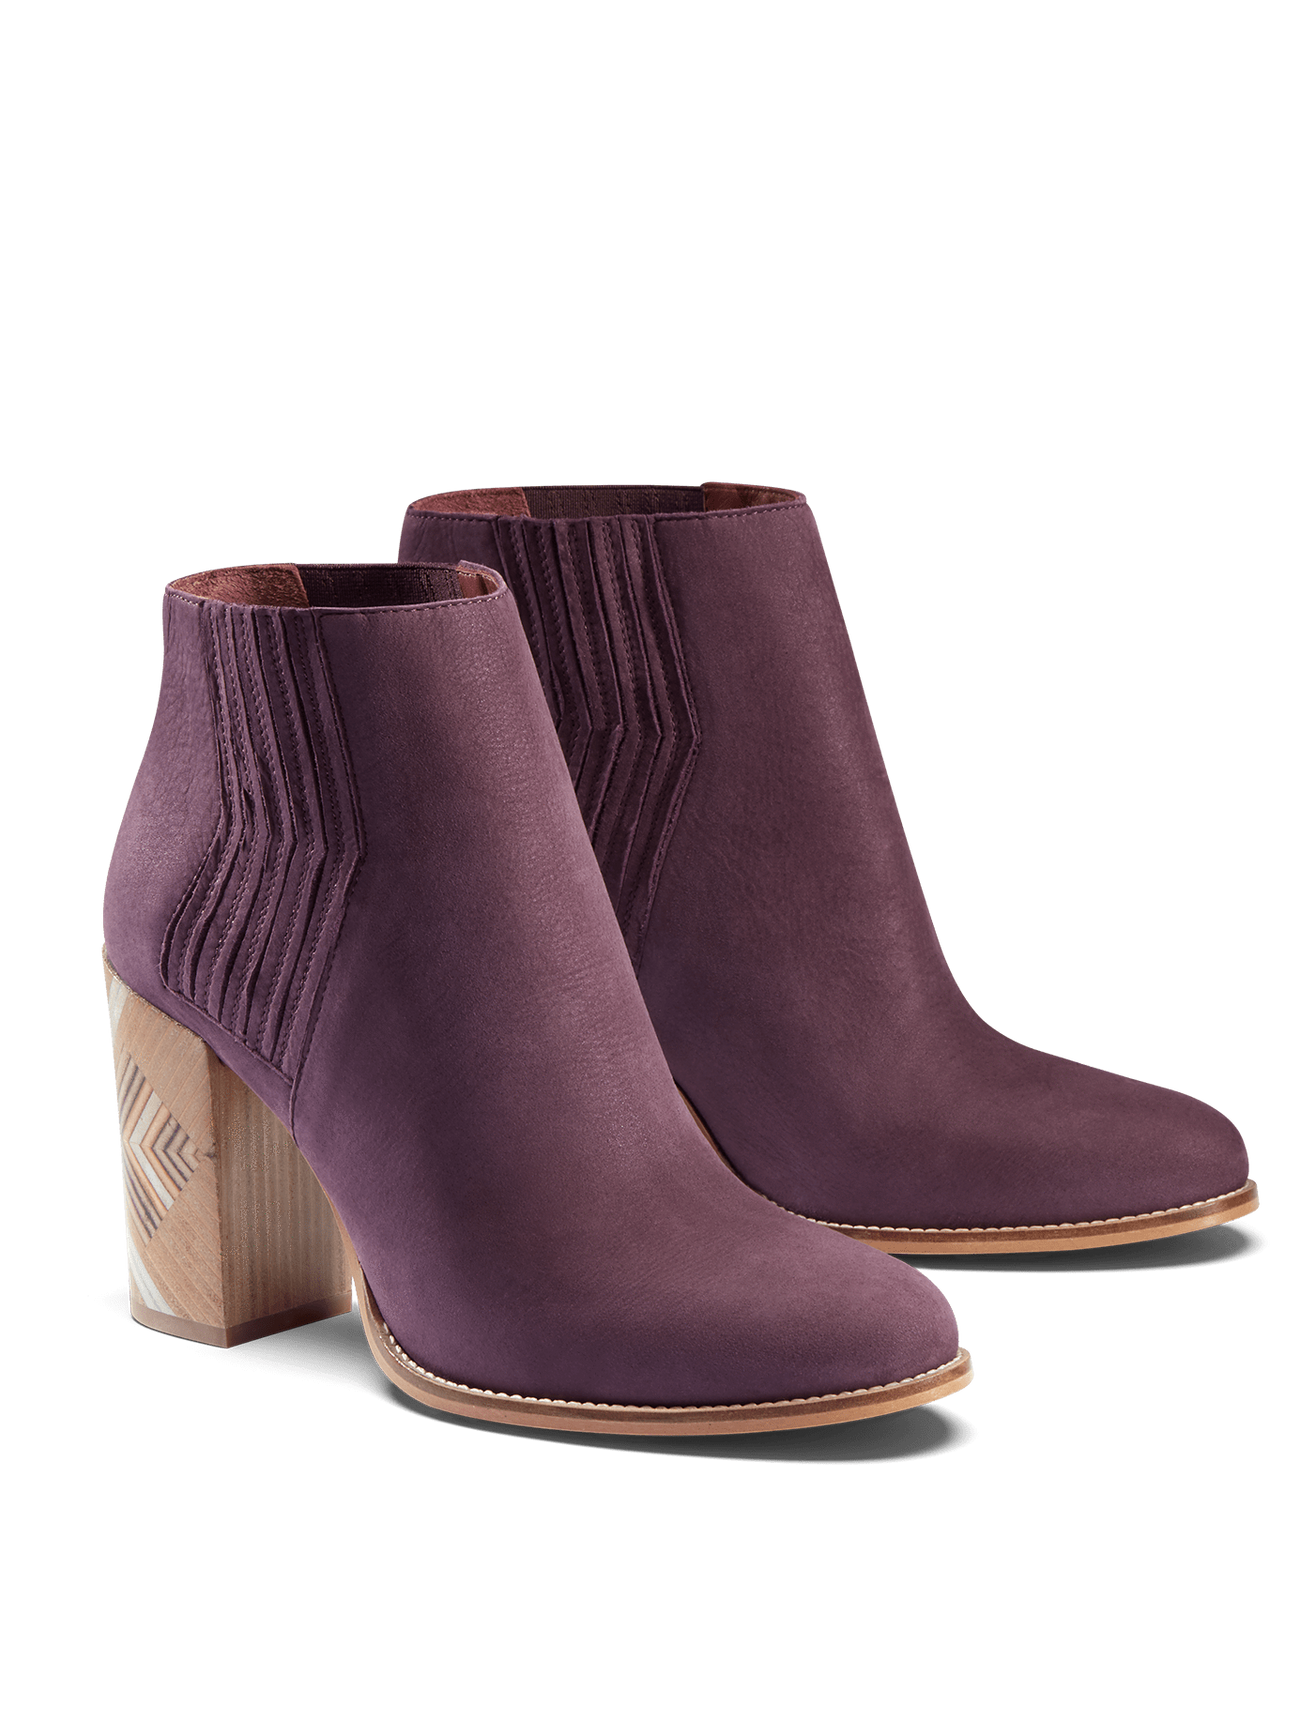 Paragon in cassis purple nubuck, with zig-zag stitching and stacked leather heel.